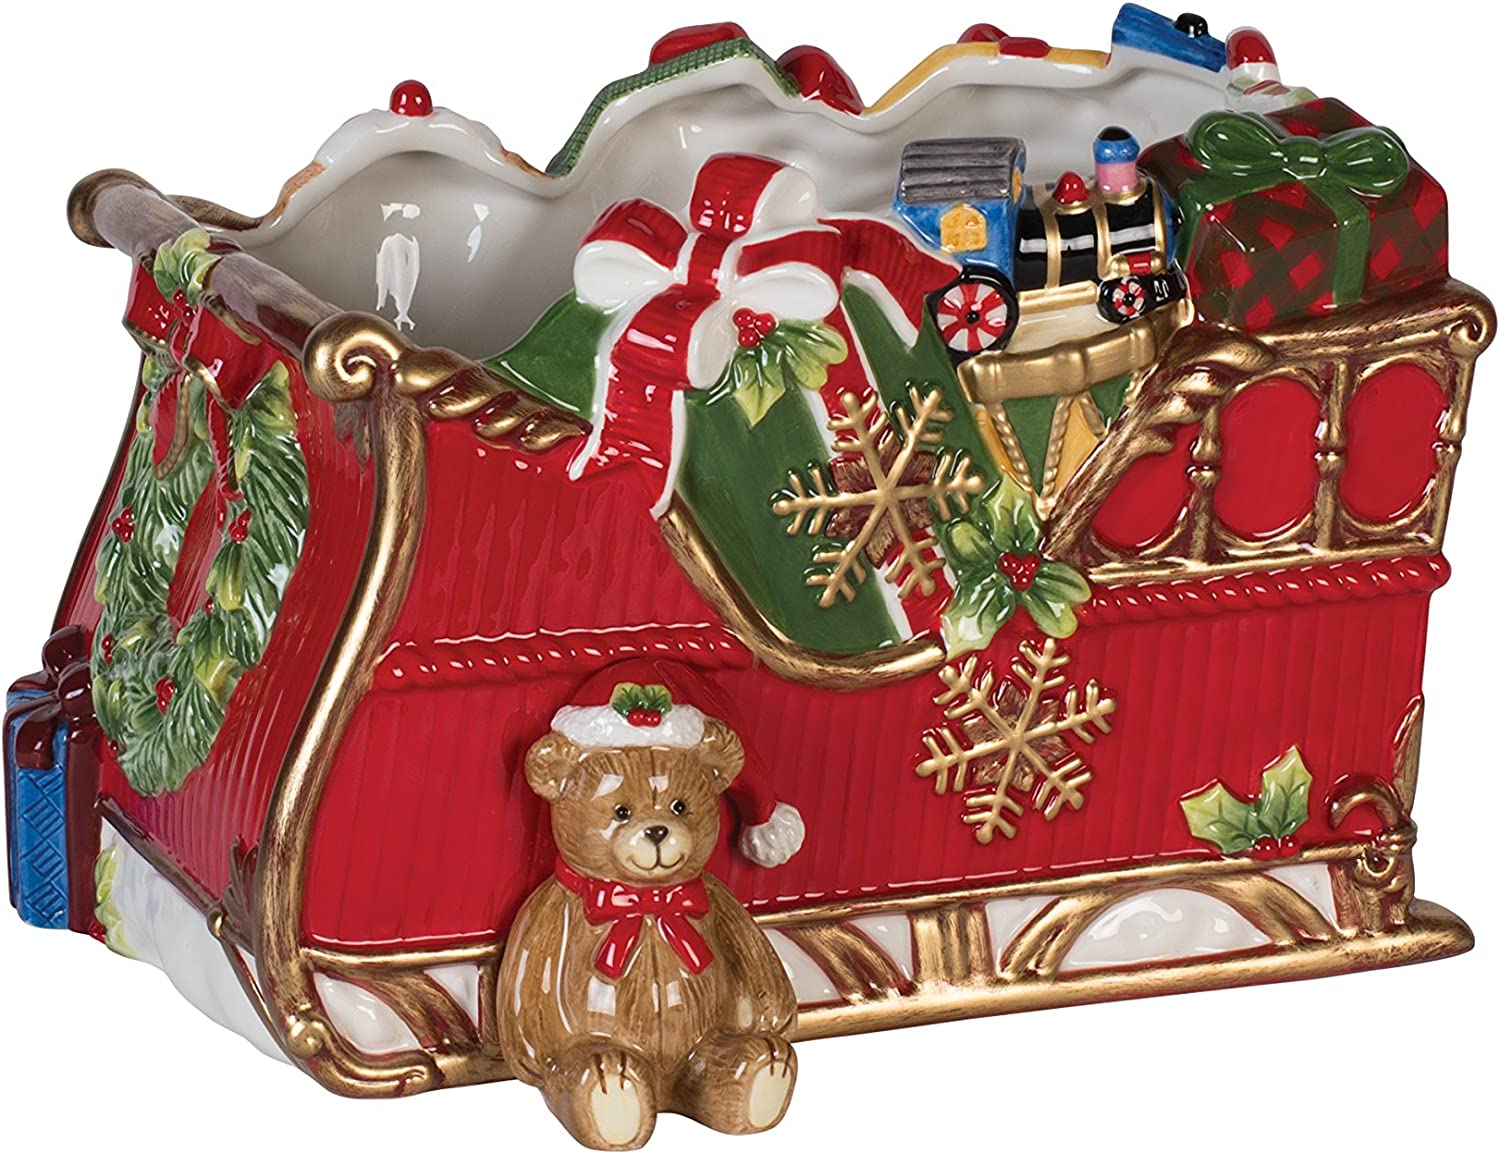 Fitz and Floyd 55-008 Christmas Sleigh Serving Bowl, Red